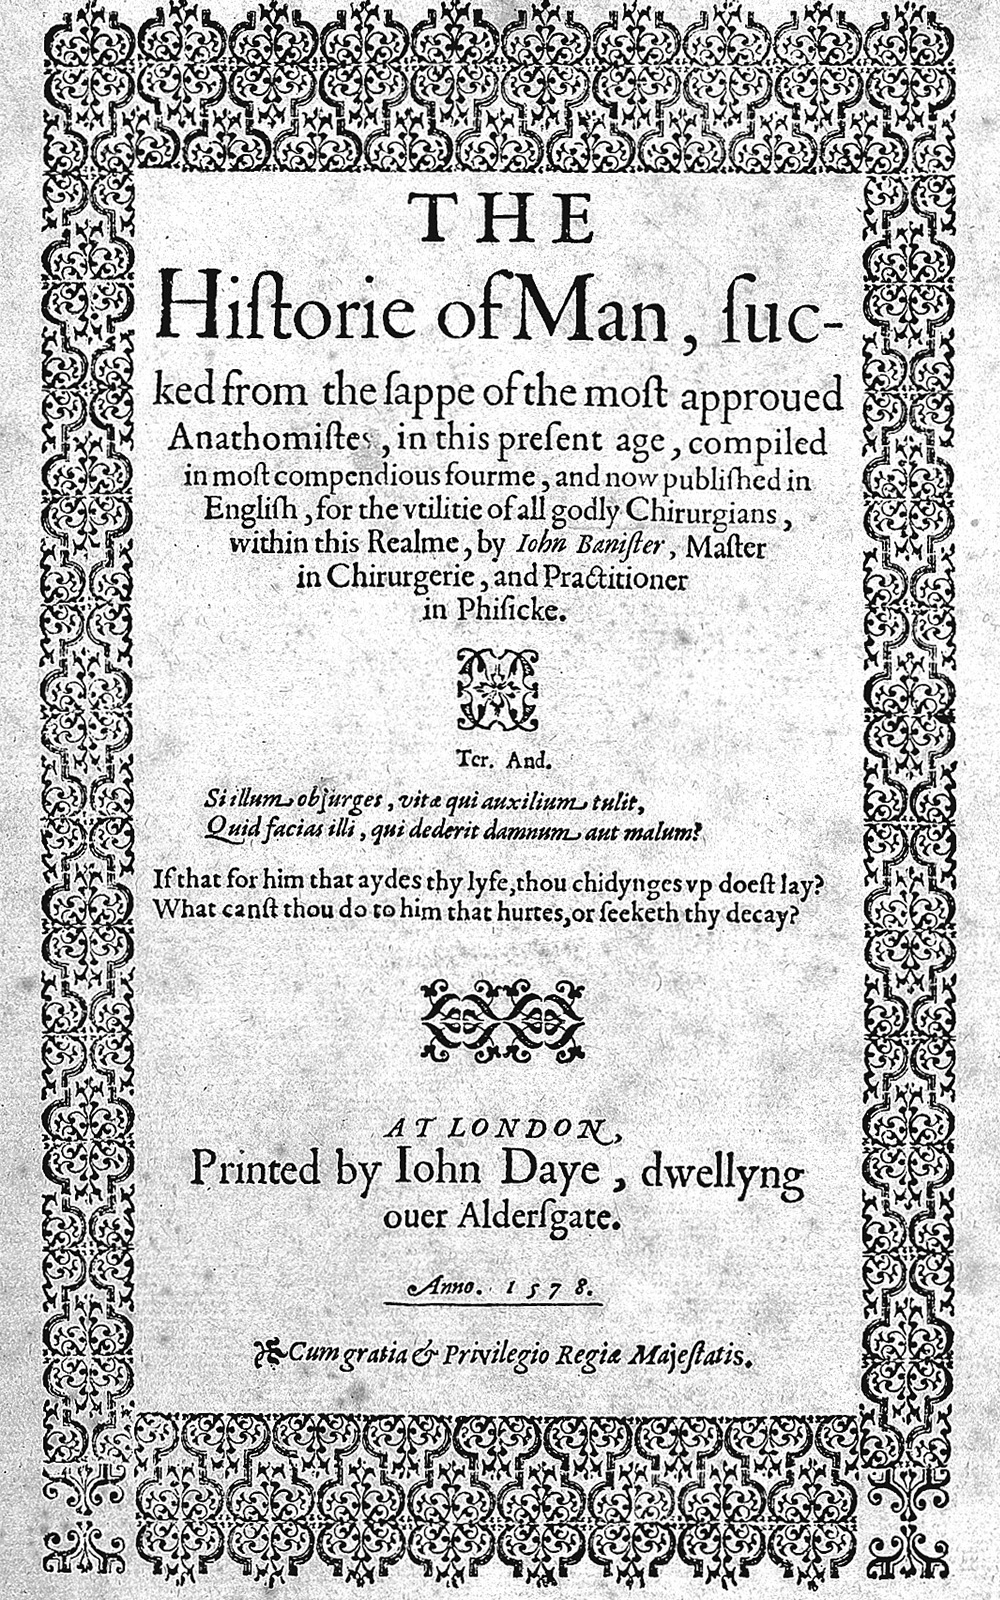 The title page from John Banister's The History of Man